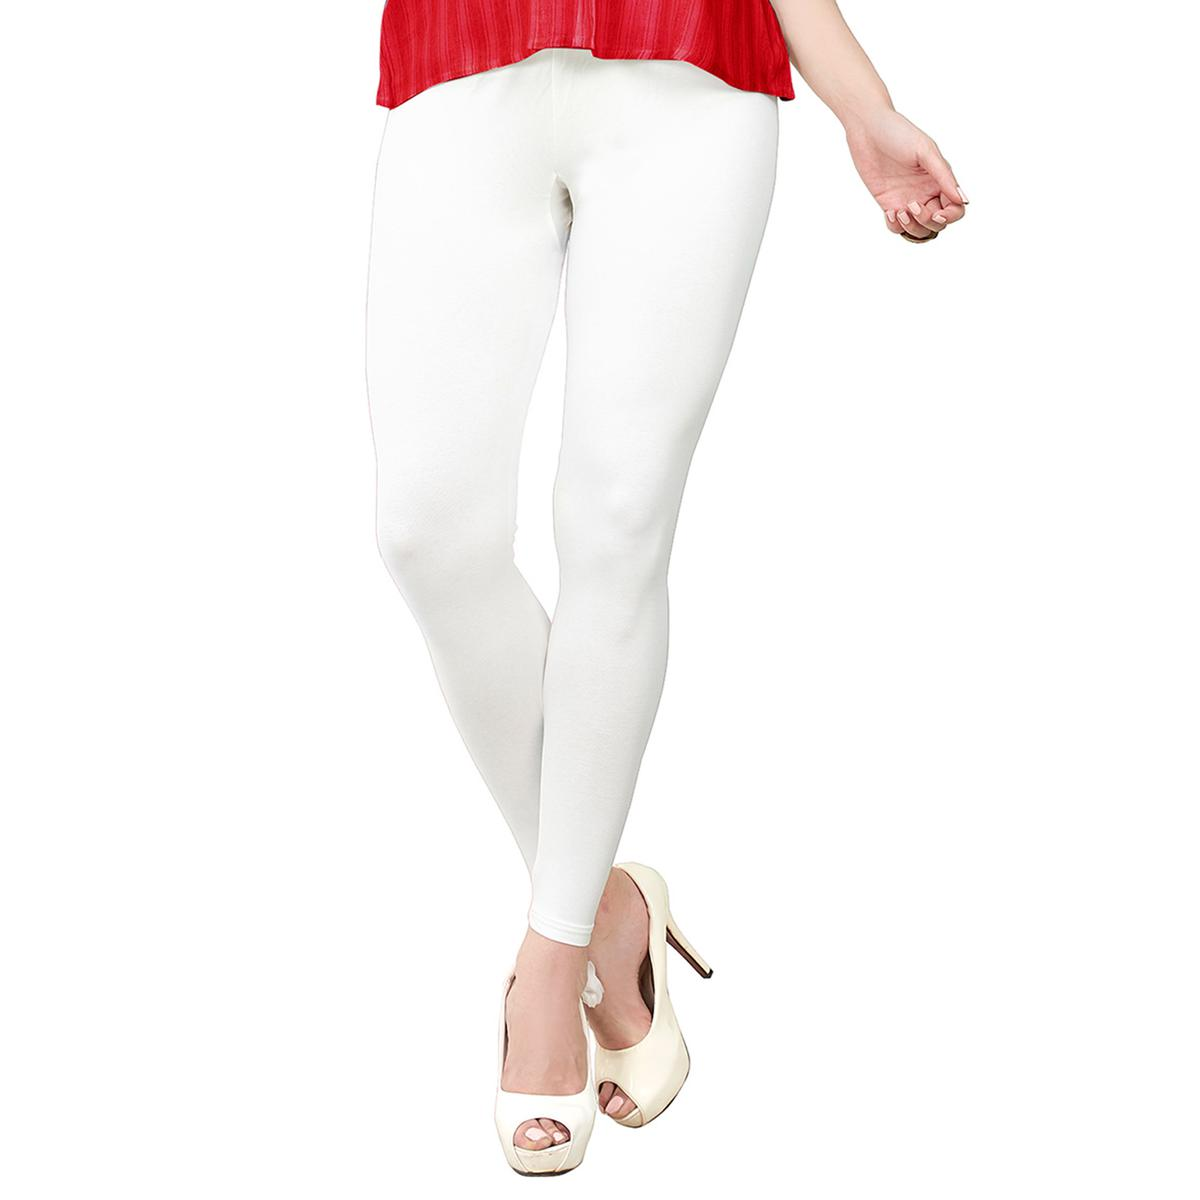 Pleasance White Colored Casual Wear Ankle Length Leggings